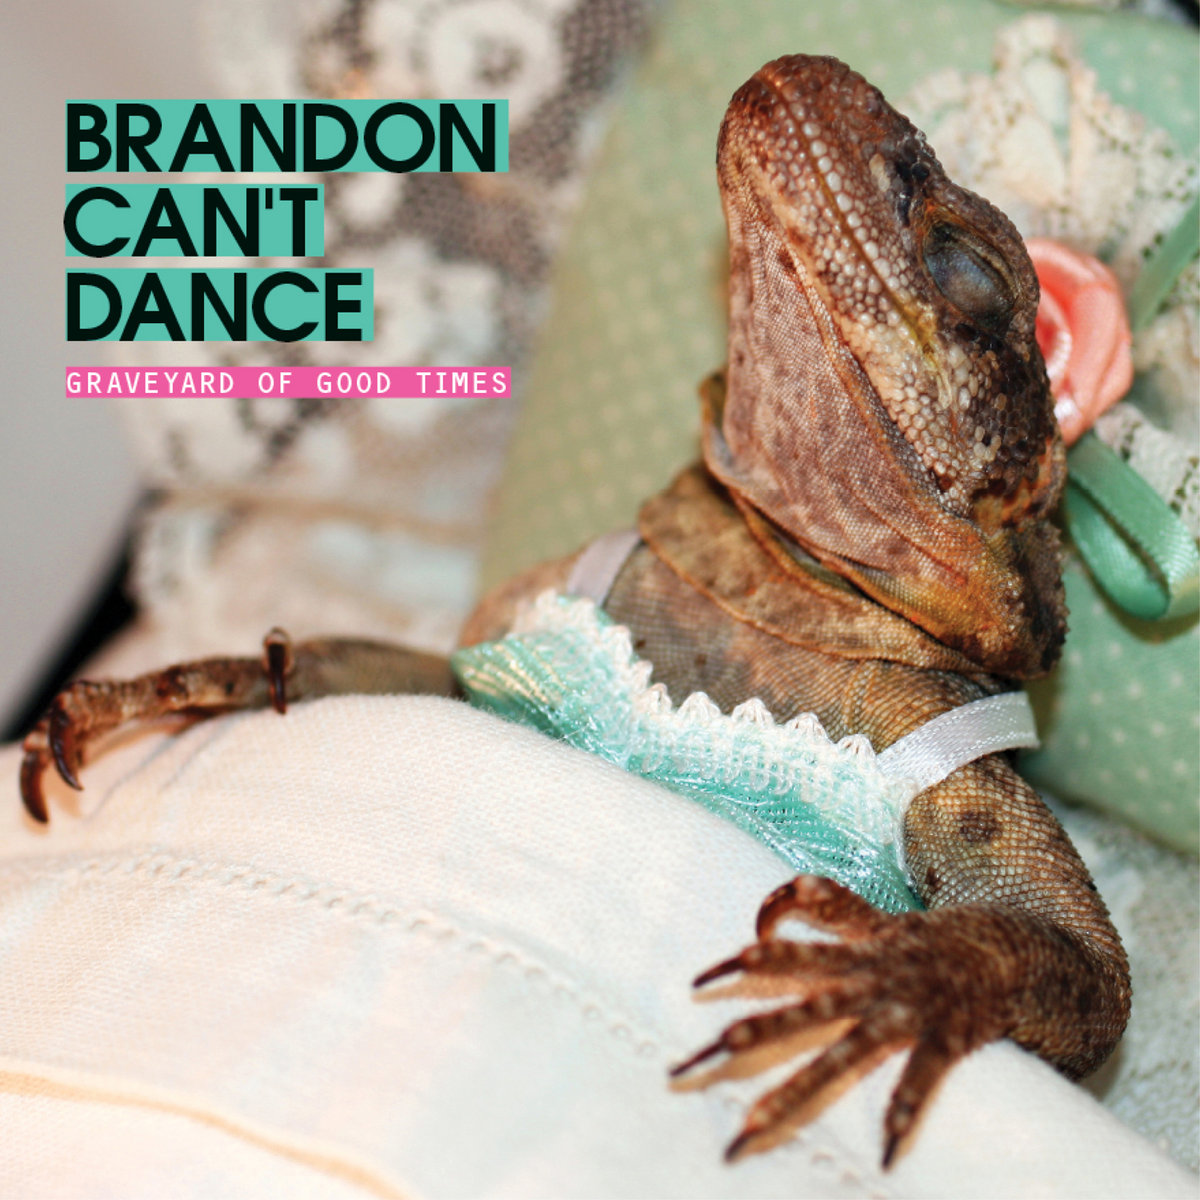 by BRANDON CAN'T DANCE